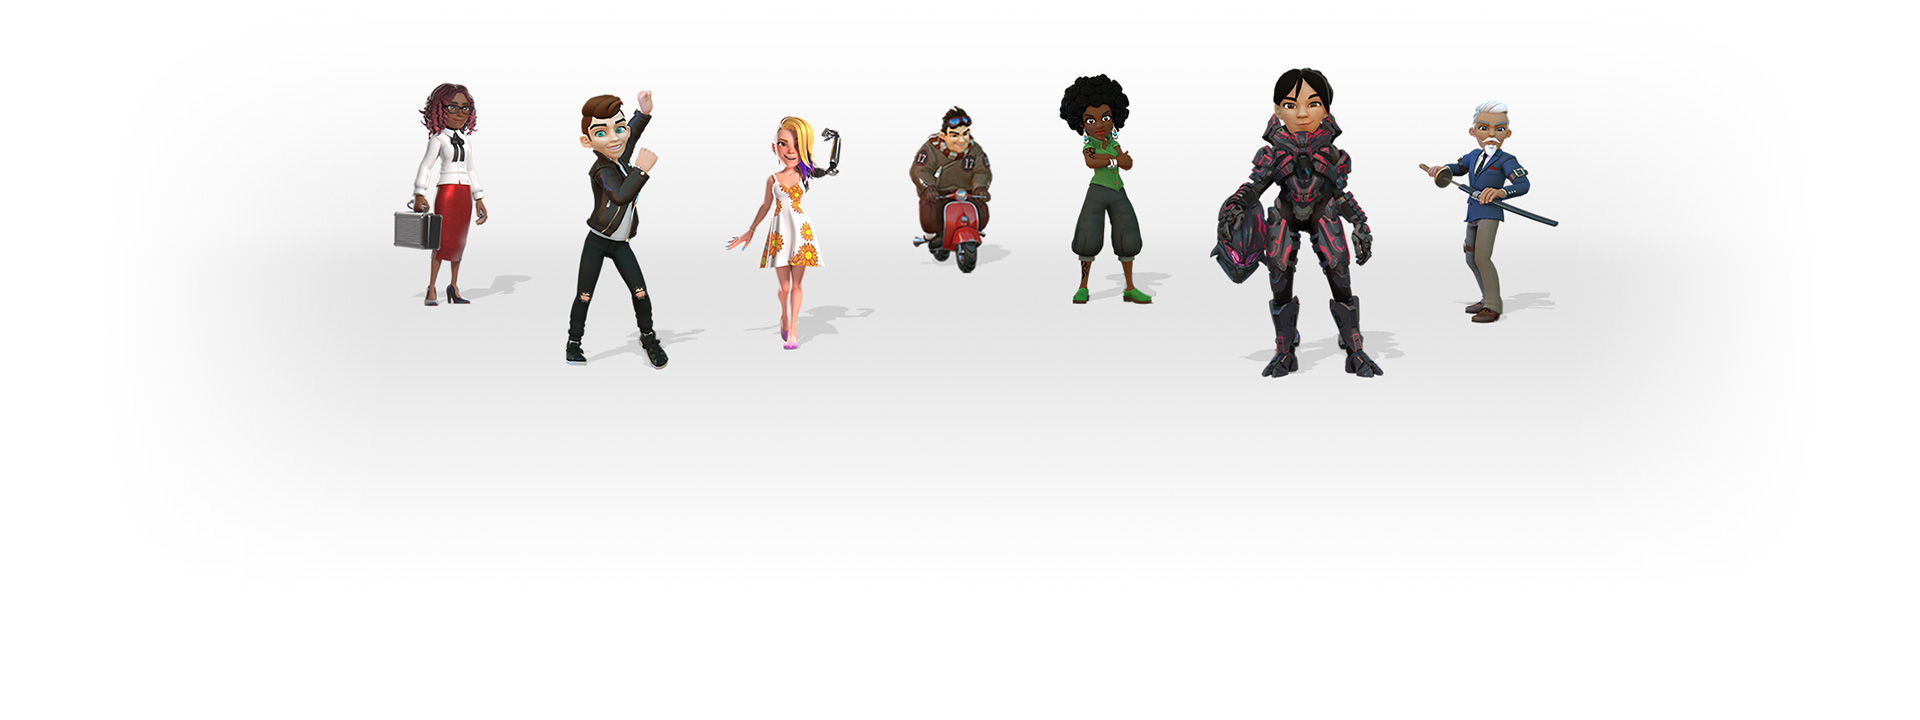 Xbox avatars showing people in different outfits